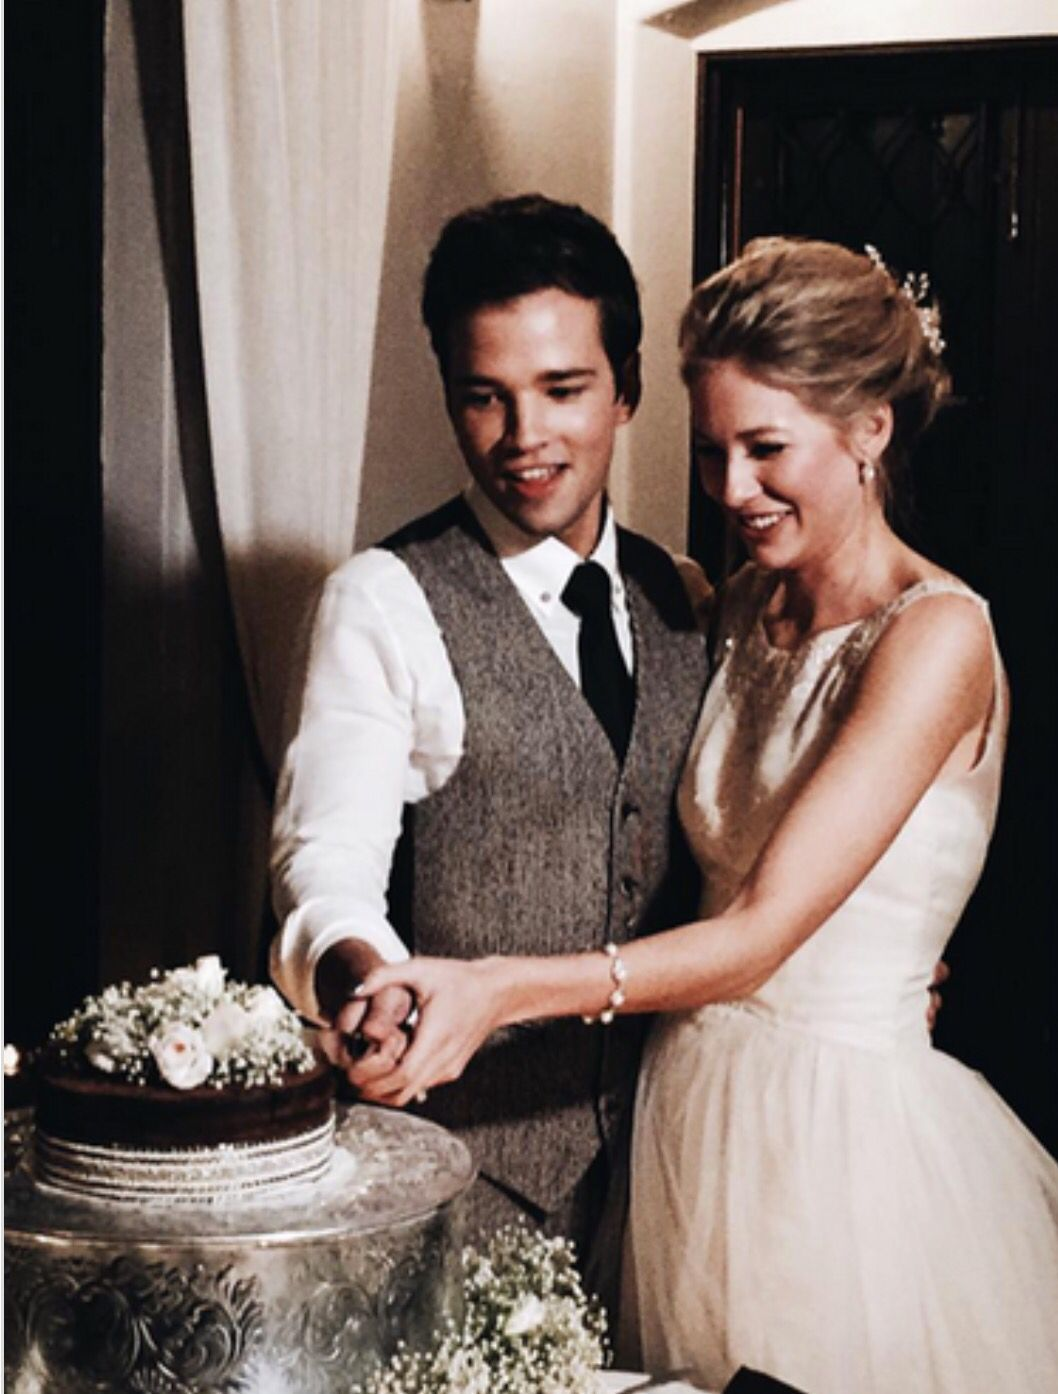 Nathan Kress Wedding.Nathan And London Kress Wedding Nathan Kress In 2019